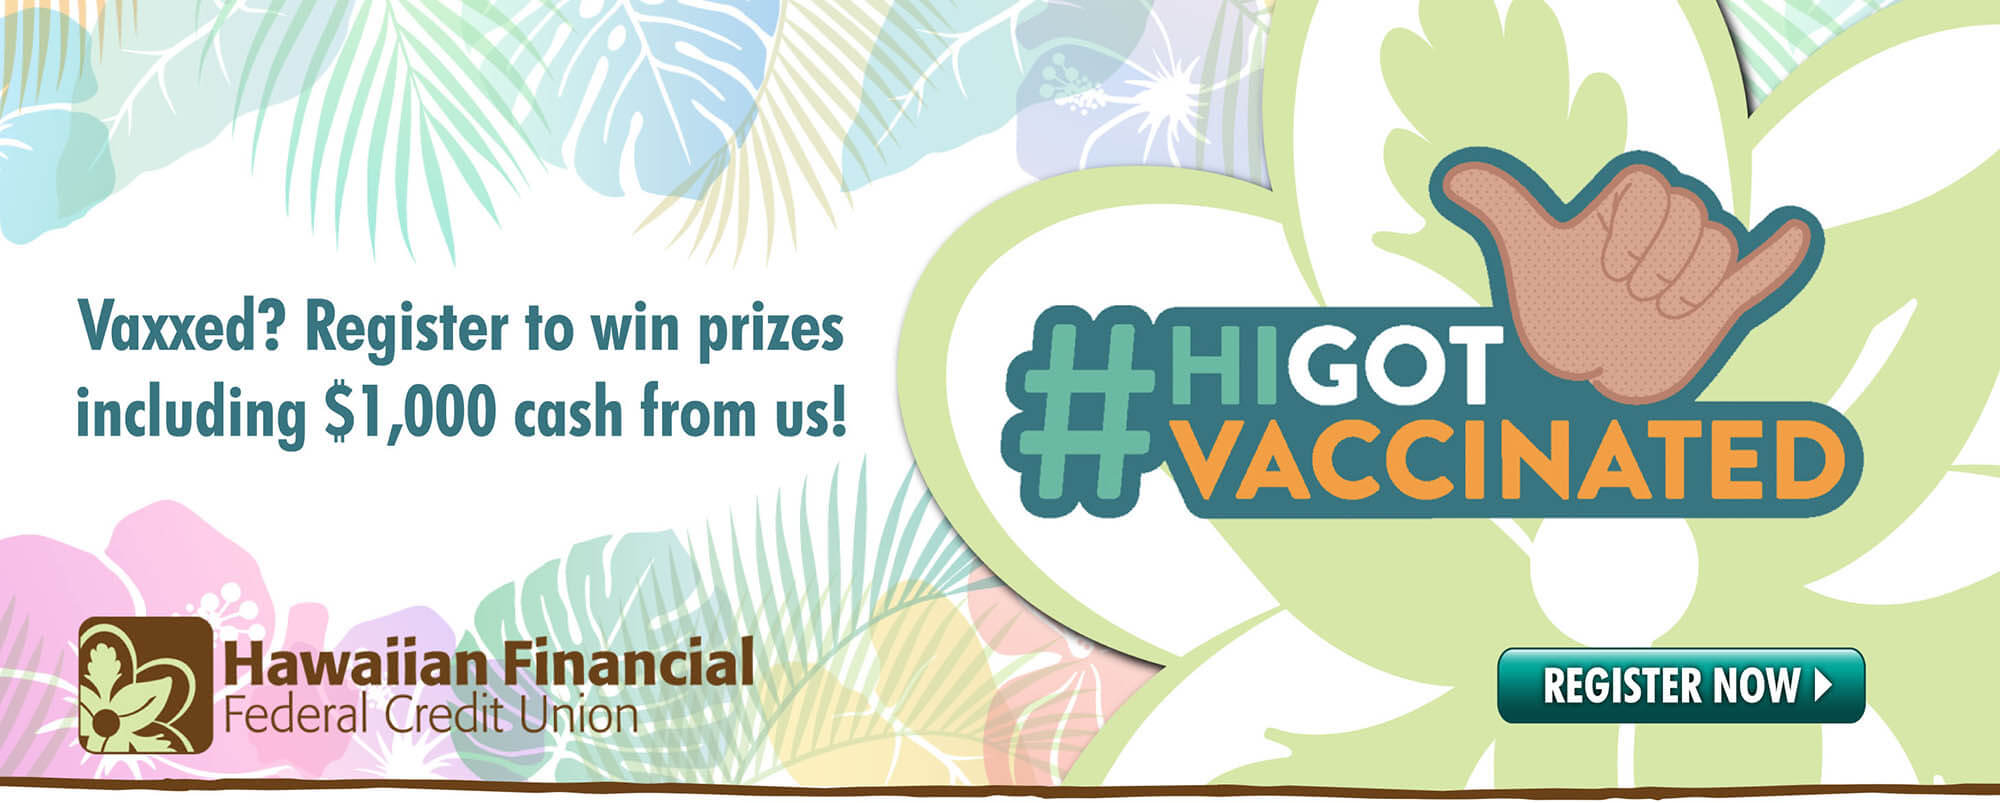 Got vaccinated?  Get Rewarded!  Register to win prizes, including $1,000 cash from HIFICU!